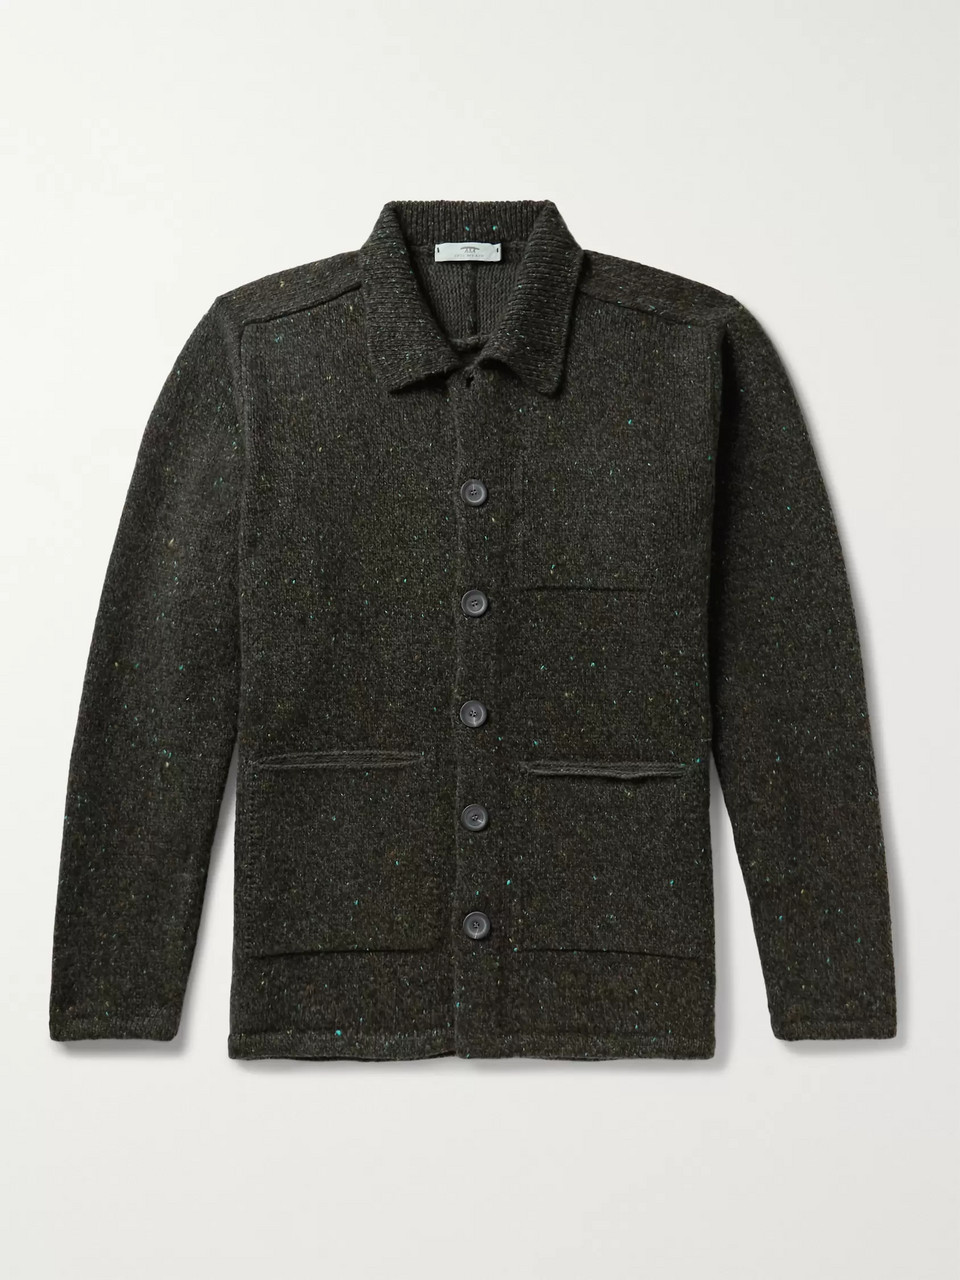 Inis Meáin Donegal Merino Wool Jacket